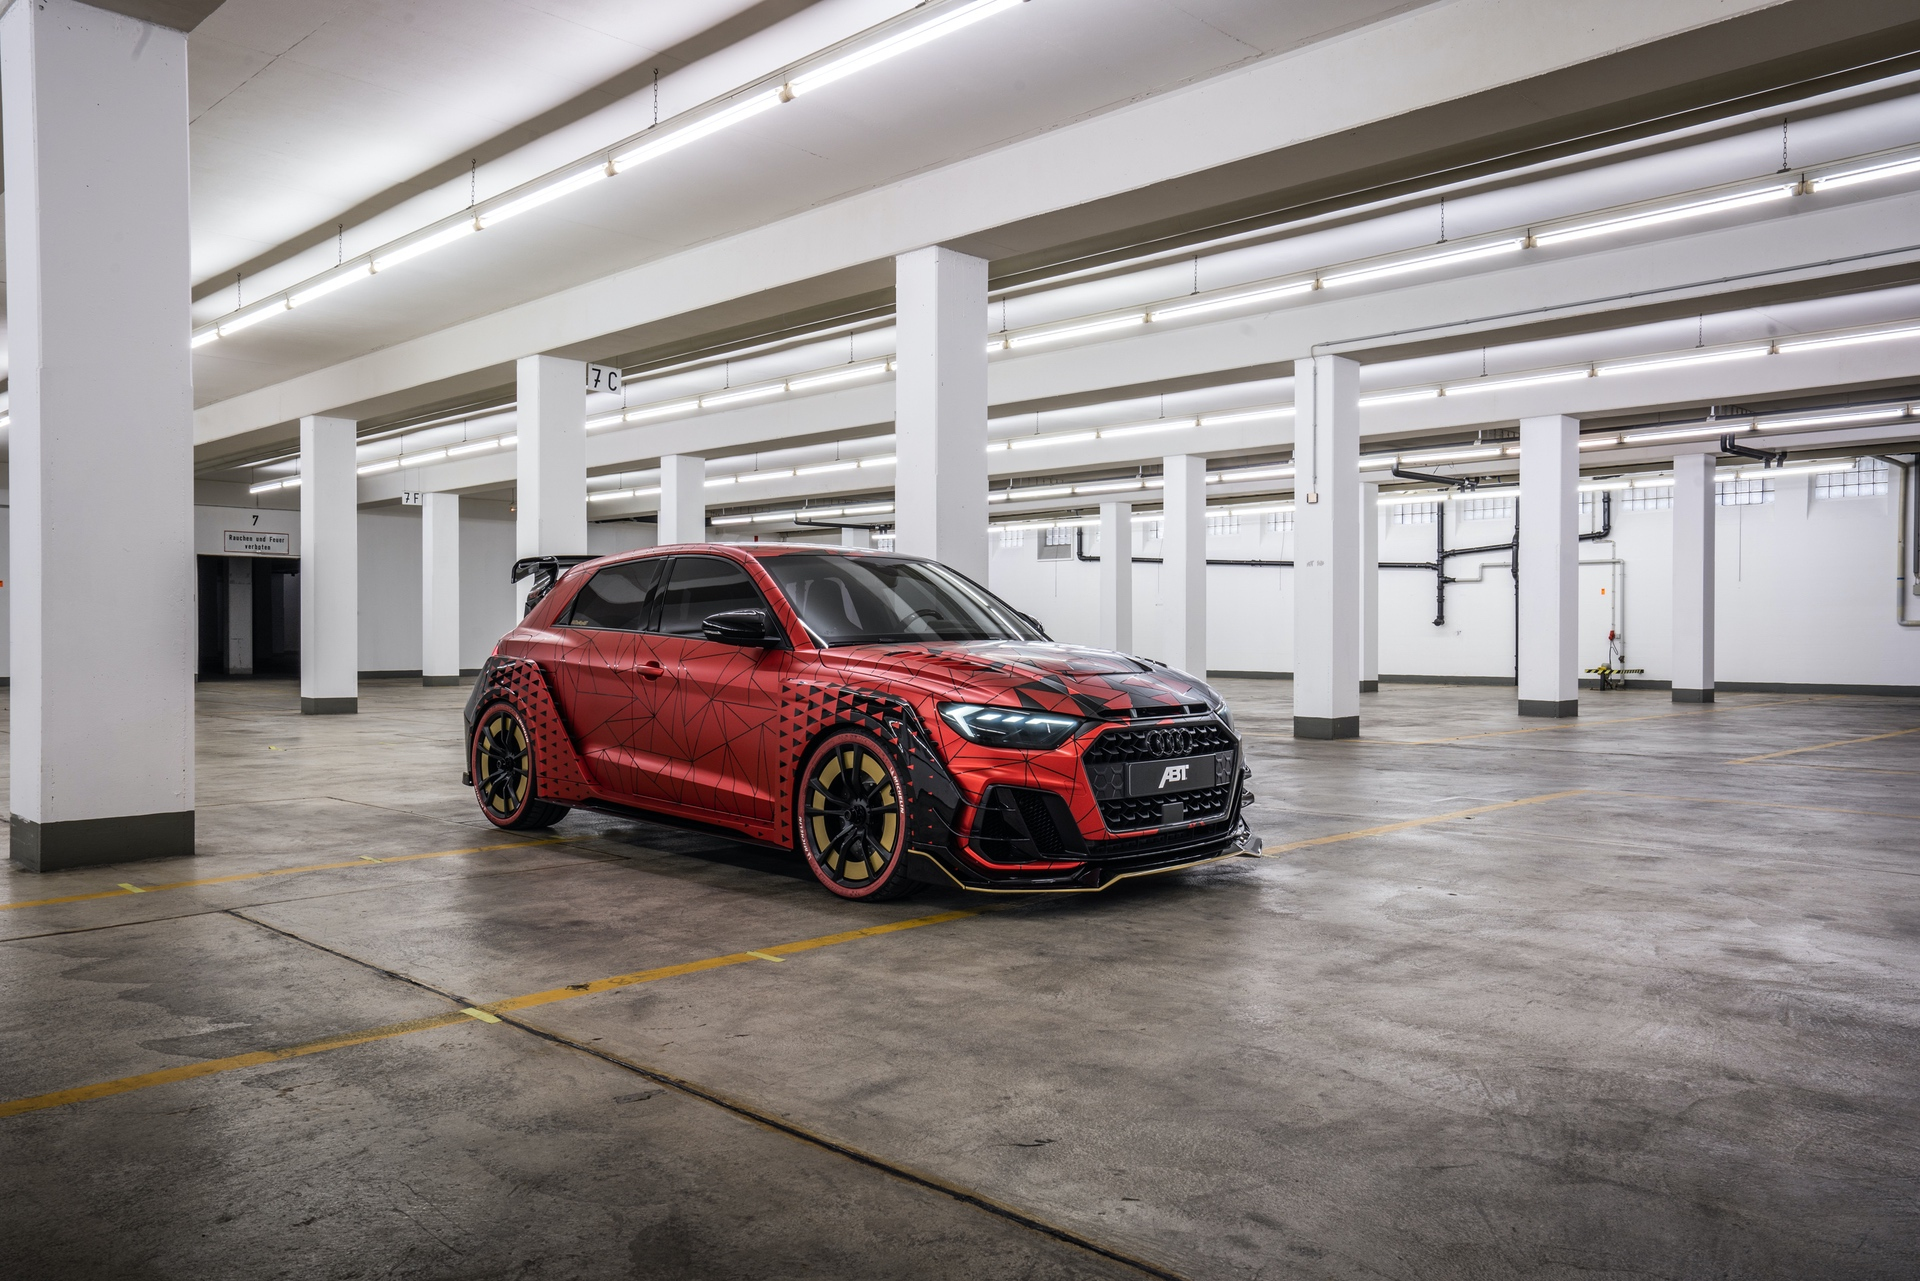 Audi_A1_Sportback_One_Of_One_by_ABT_Sportsline_0009